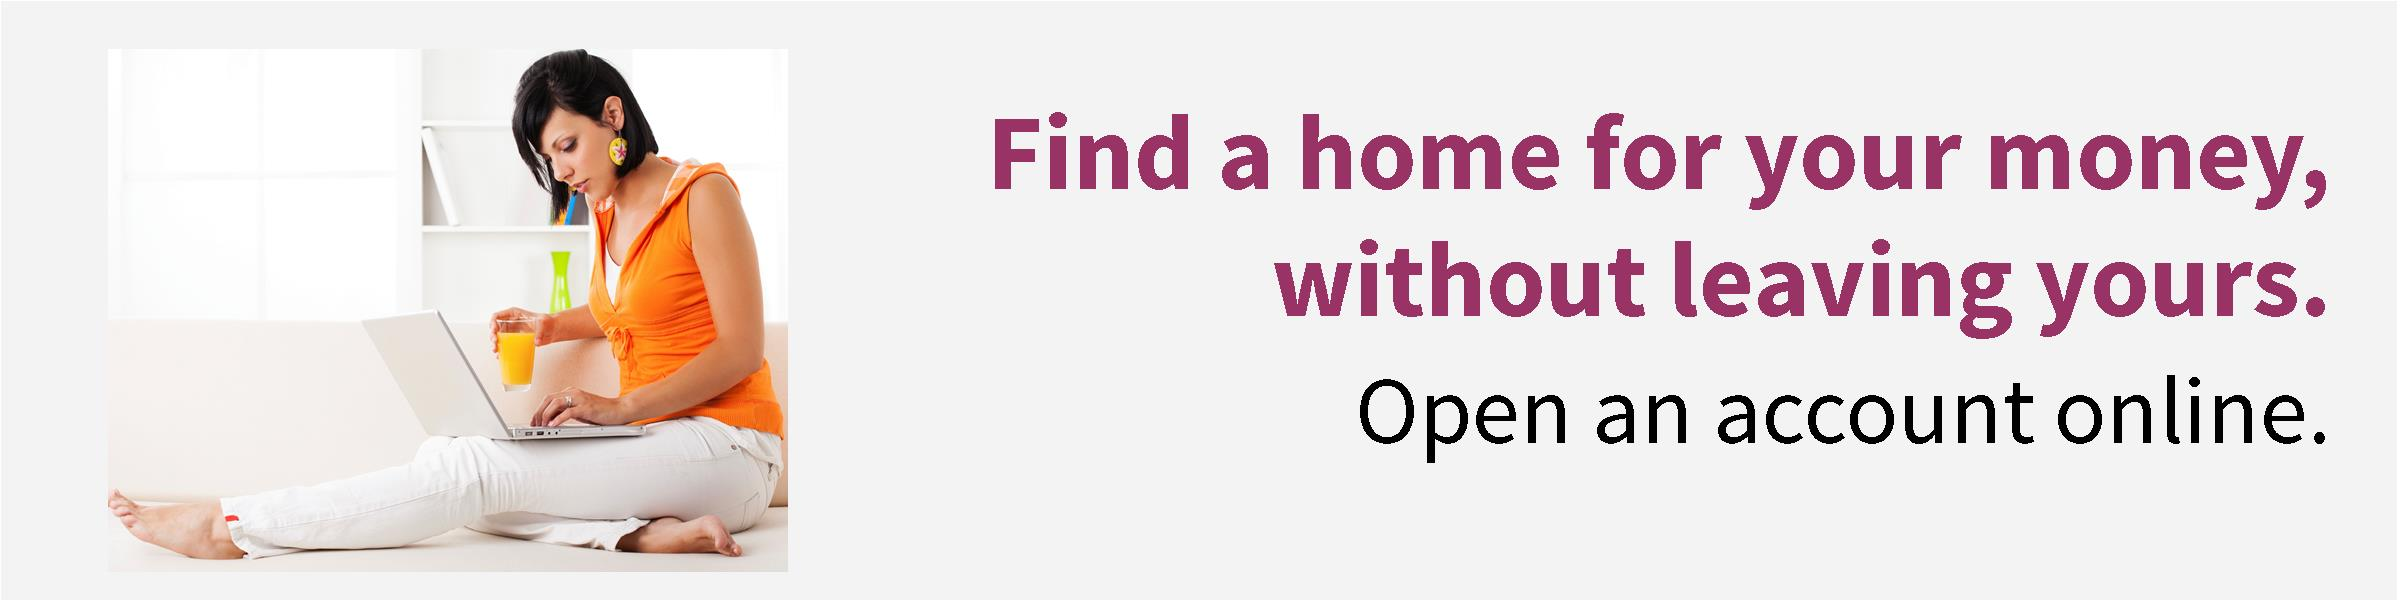 Find a home for your money without leaving yours.